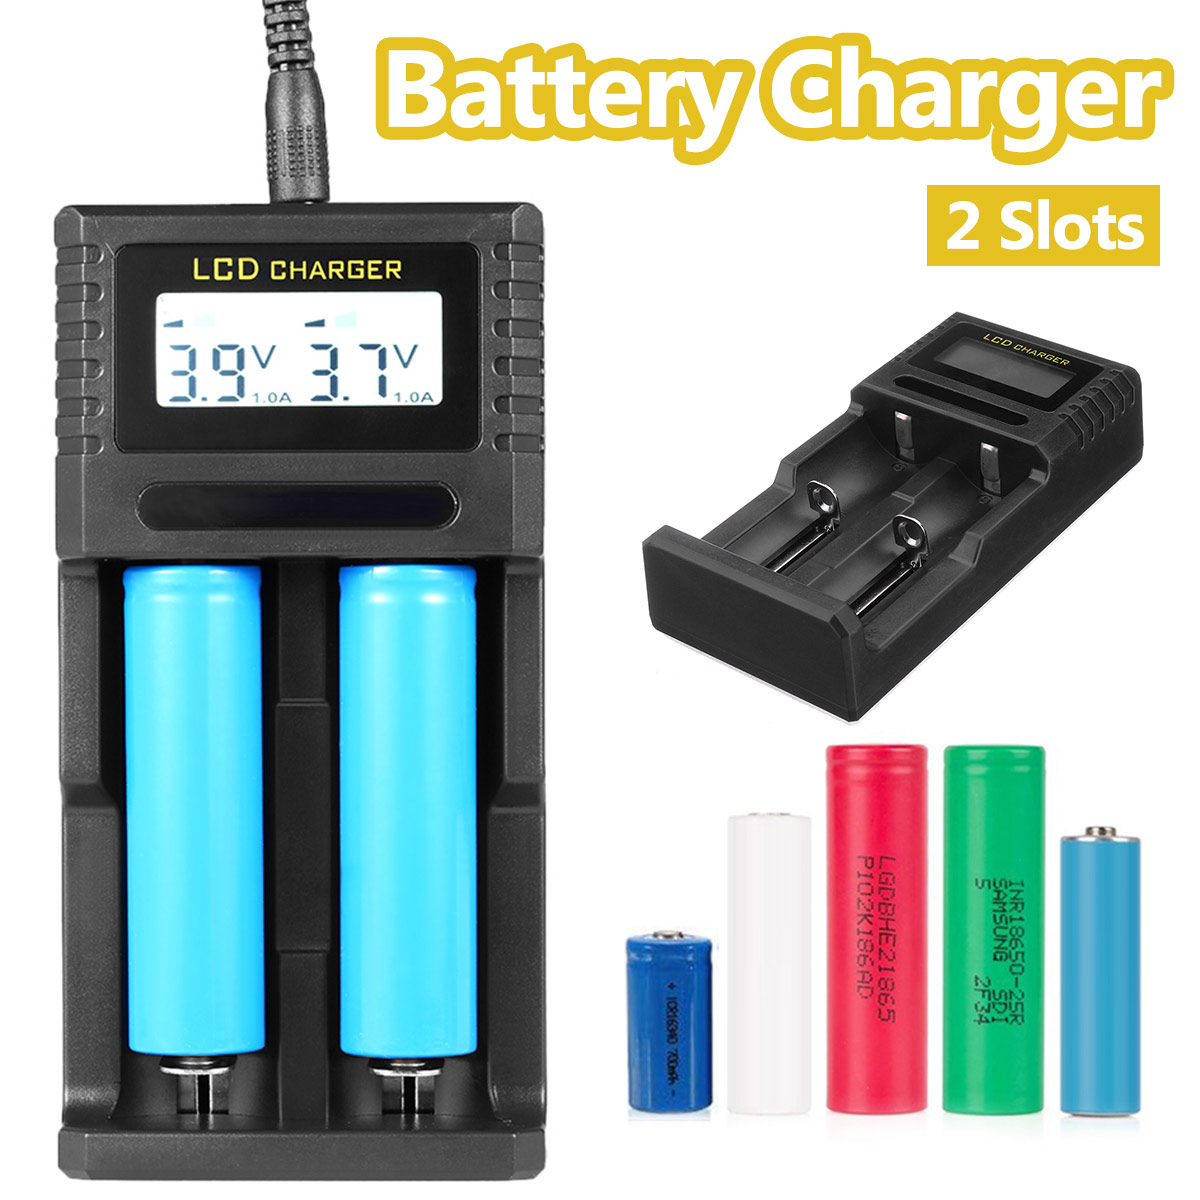 12V Rechargeable Battery Smart Charger USB Dual Slots NiMH AA AAA AAAA Lithium 10440 14500 17500 17670 Battery Charger